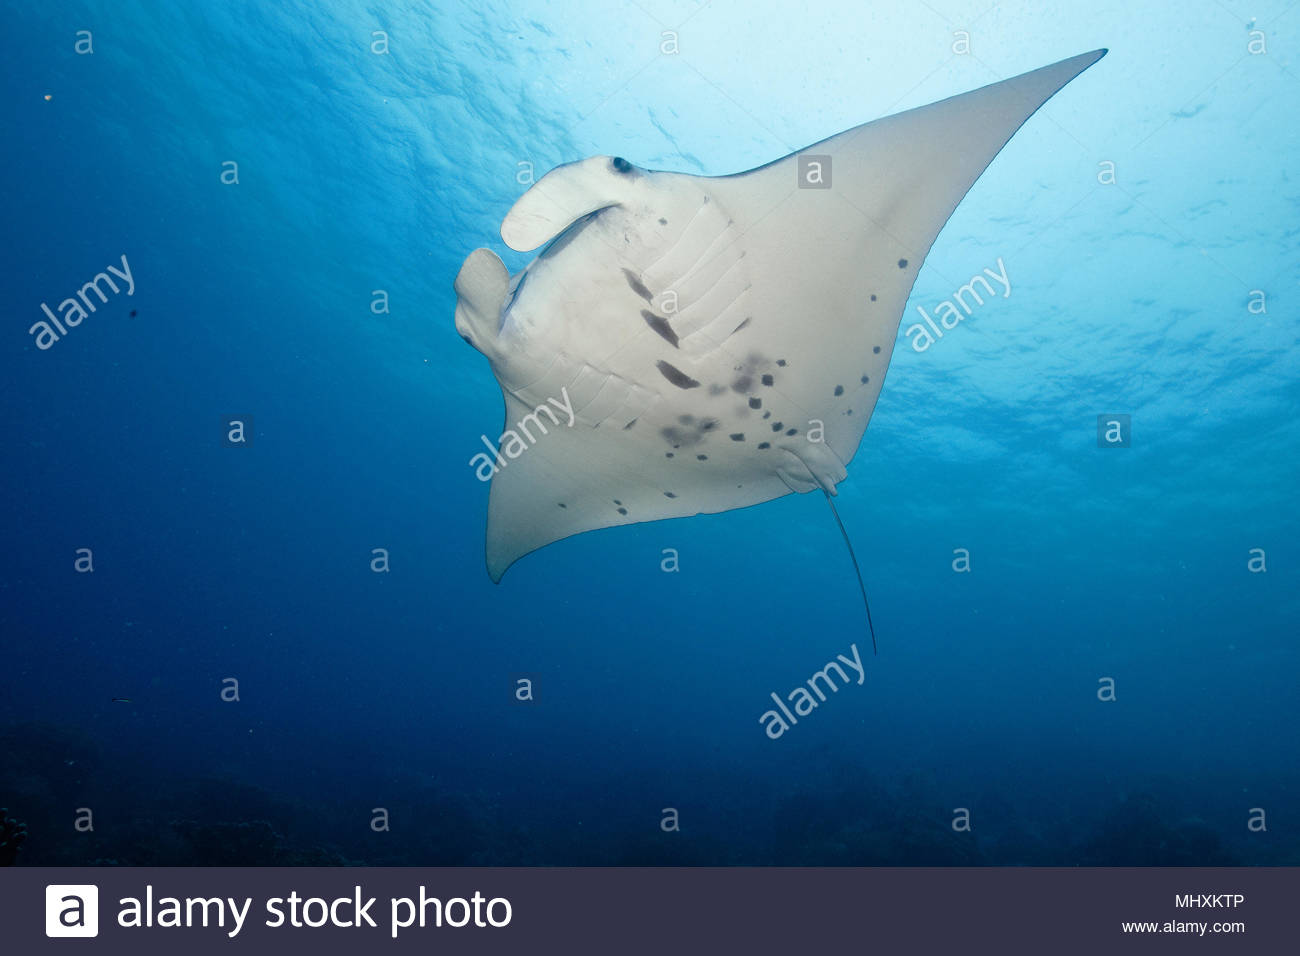 mantaray, reef manta, huge ray / /Manta alfredi) | Manta, Teufelsrochen, Flügelrochen, Riffmanta / (Manta alfredi) Stock Photo